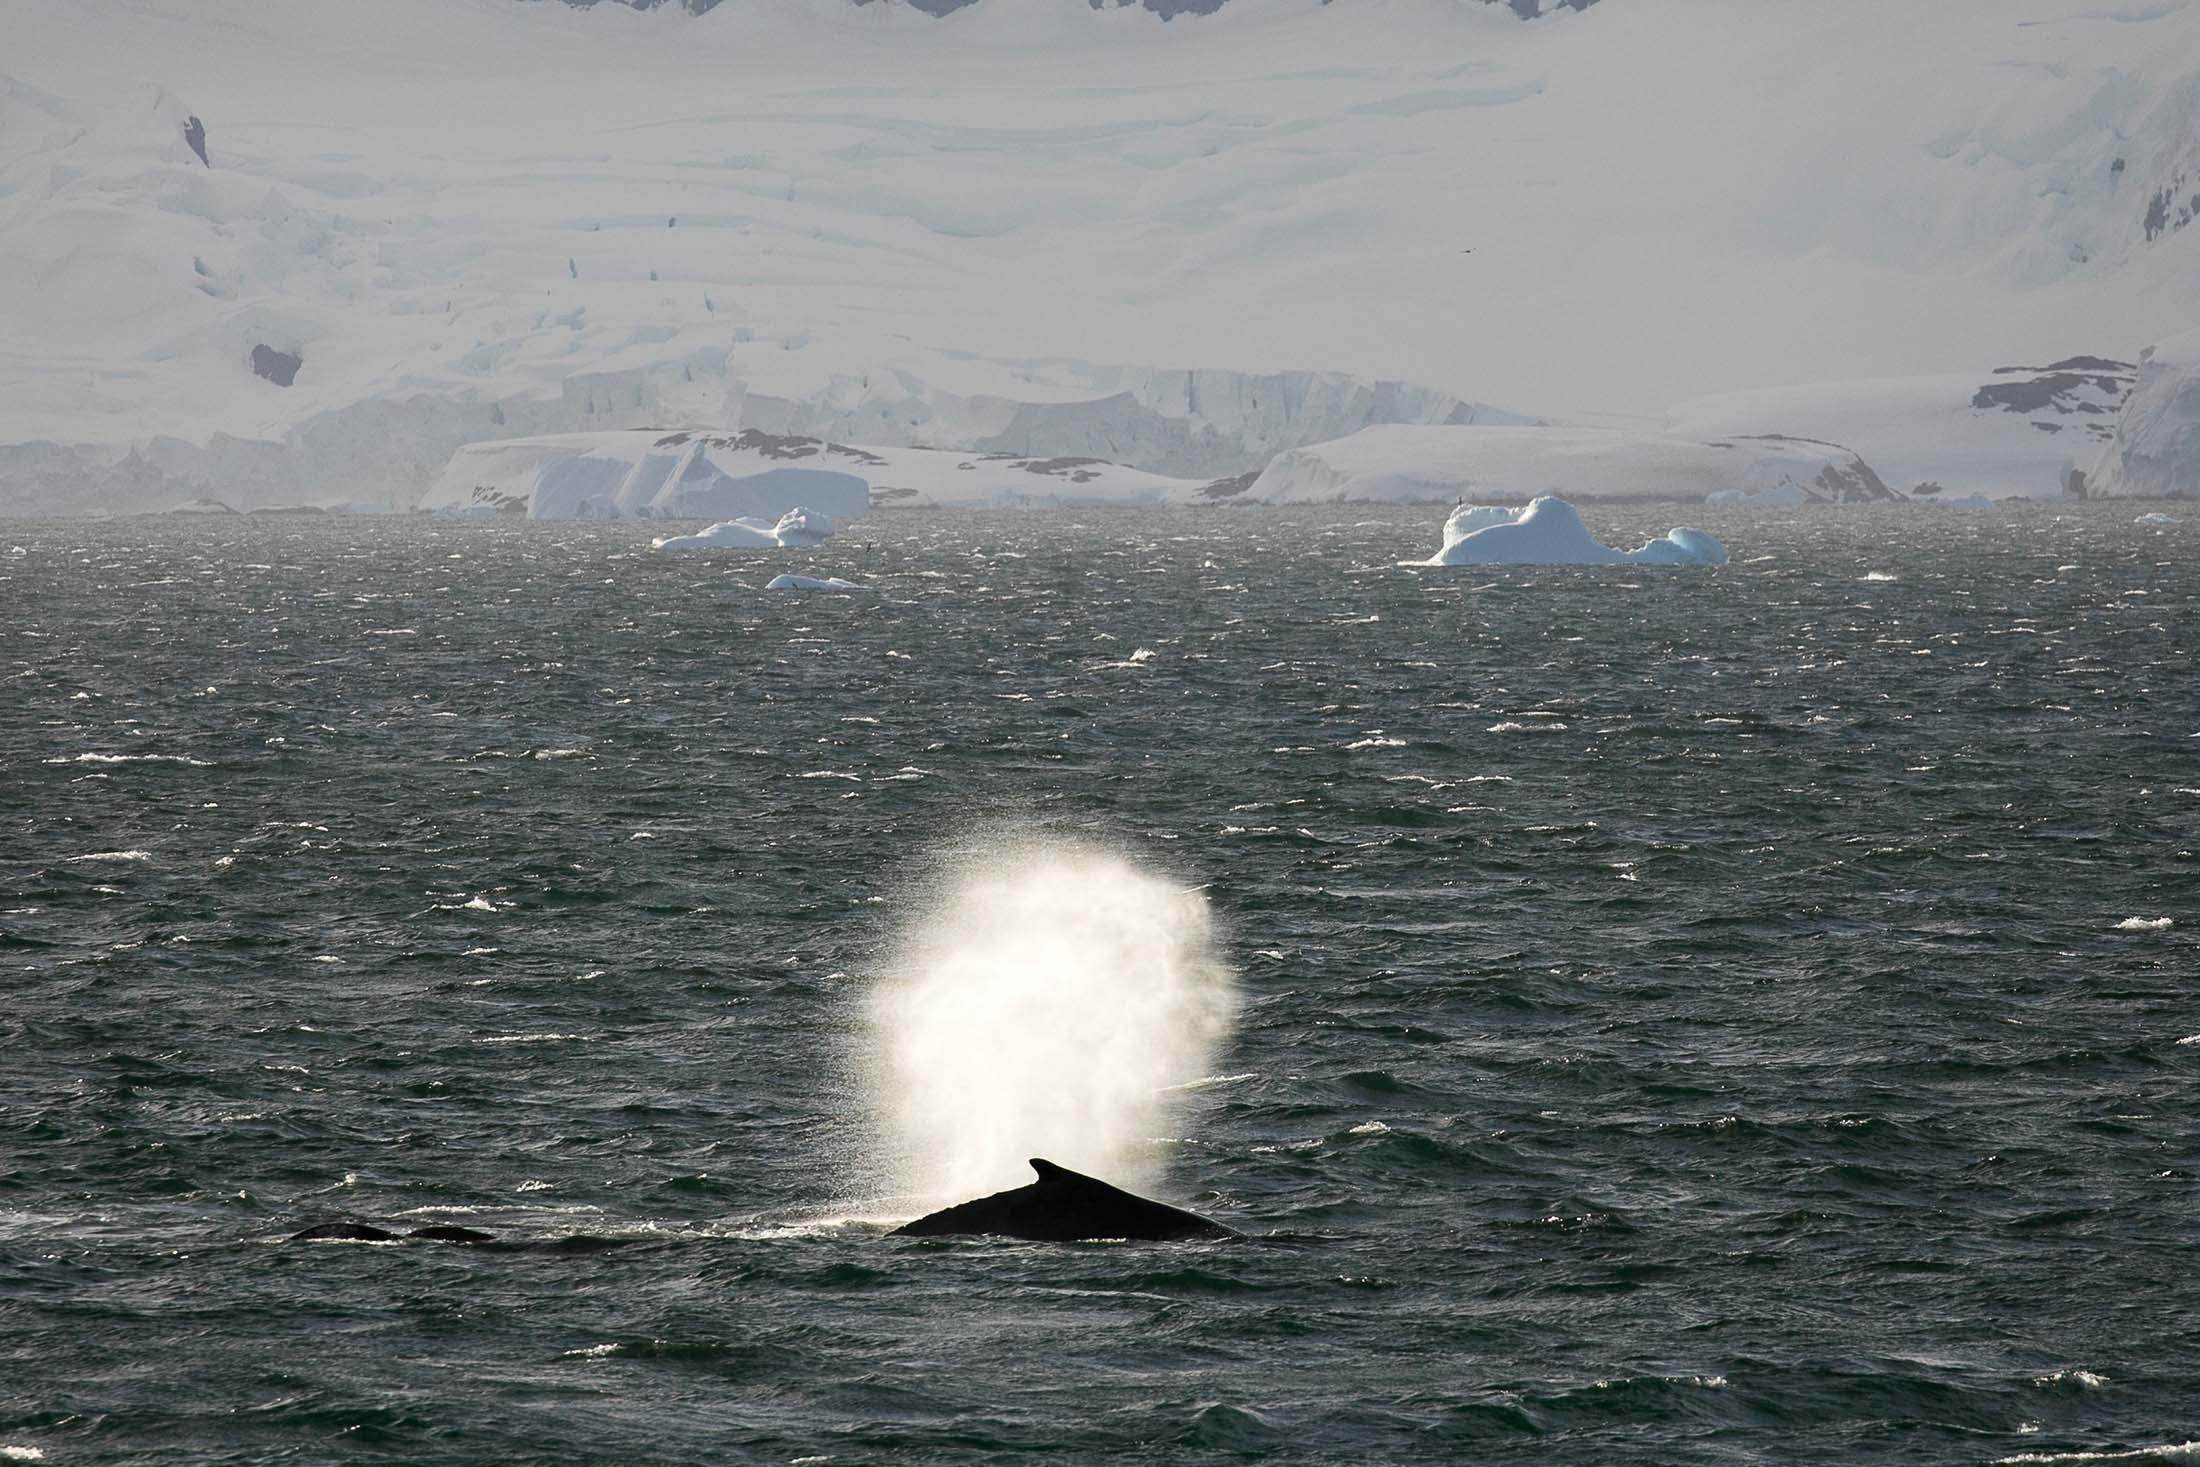 Seeing humpback whales in the Antarctic Sound is one reason to visit Antarctica with Silversea